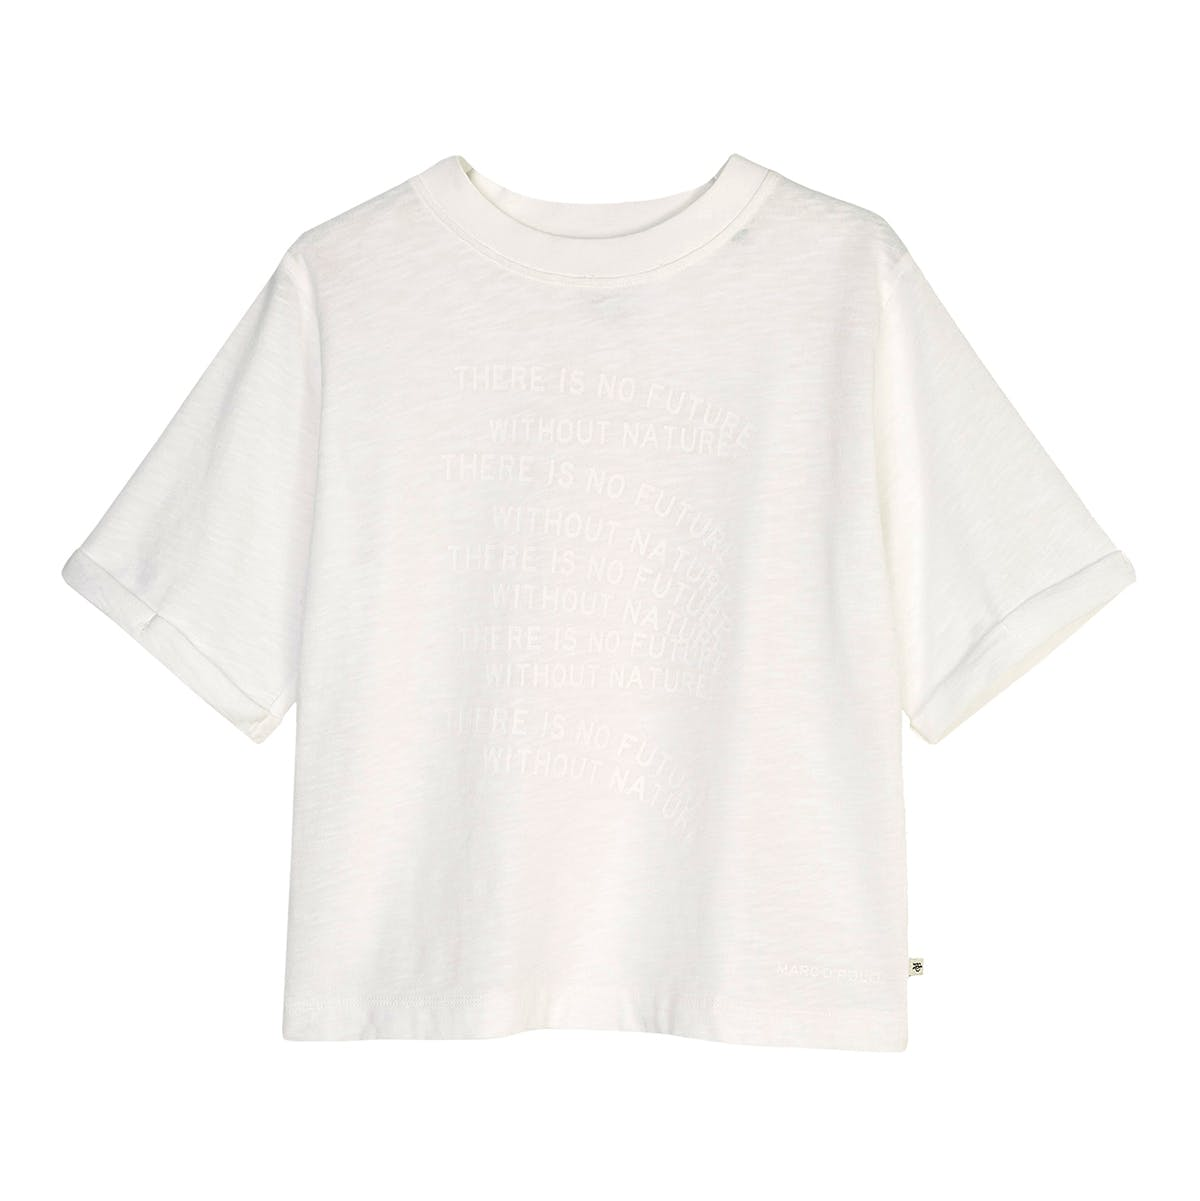 MARC O'POLO T-Shirt mit Statement-Print - Natural White